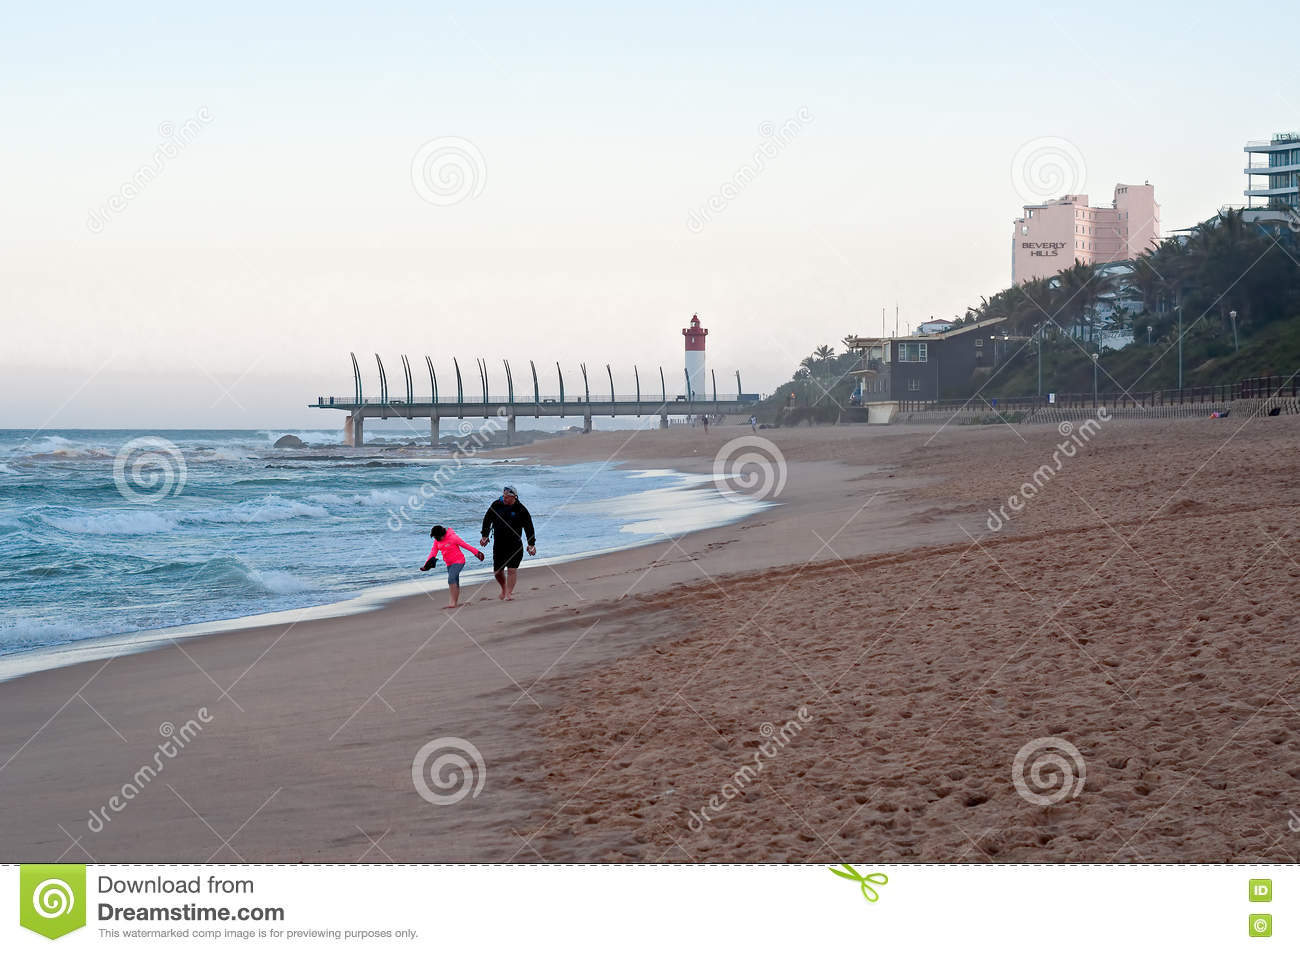 People On The Beach At Umhlanga Rocks, With The Millennium Pier.